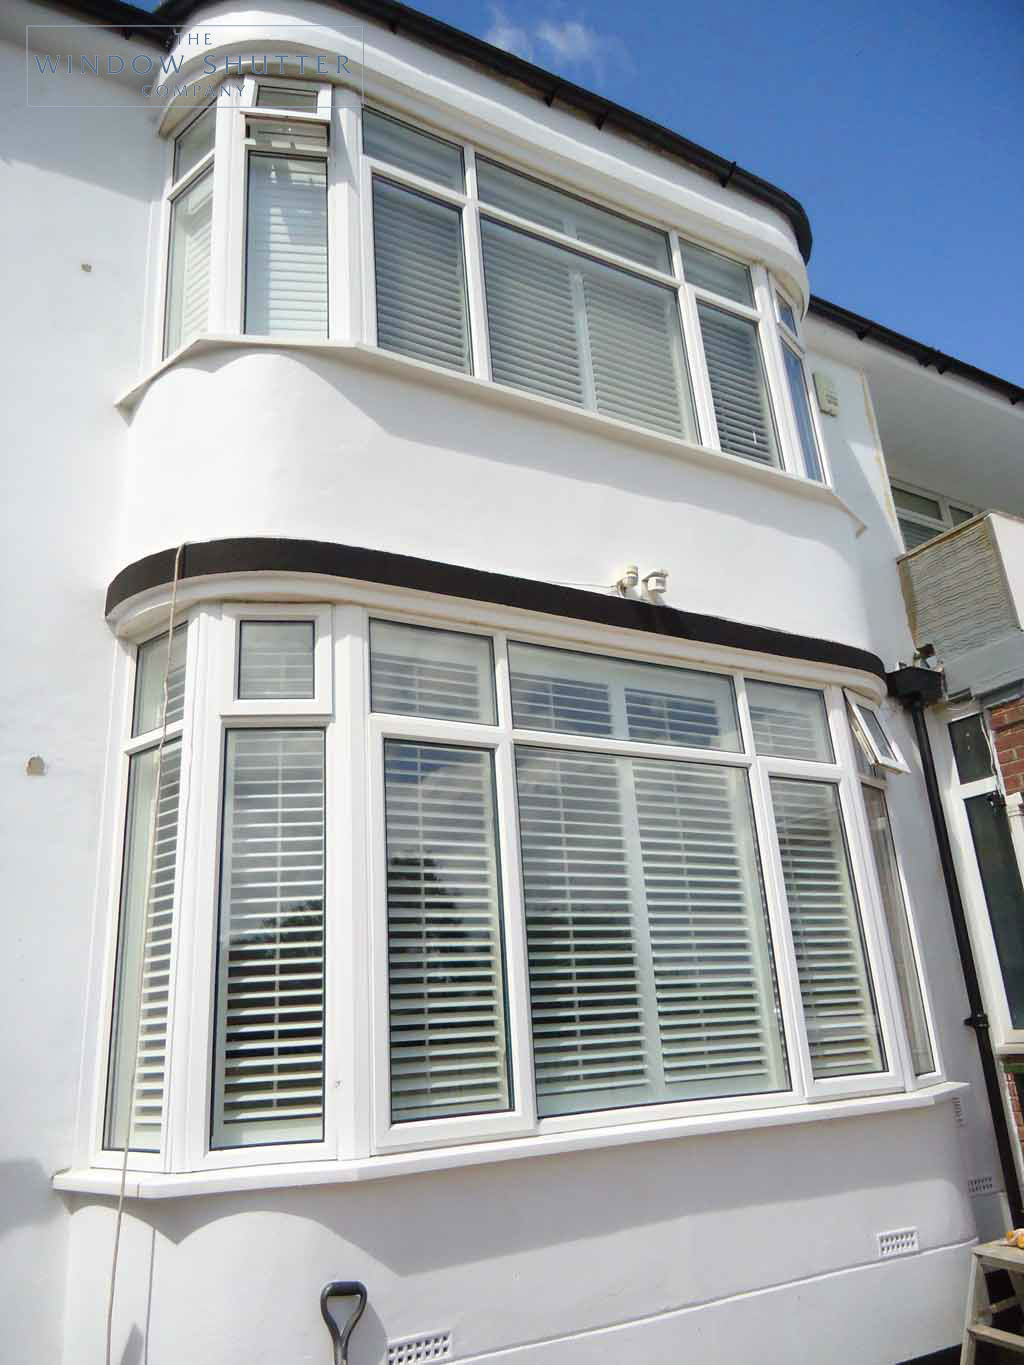 Full Height shutter Seattle tilt rod bay window lounge large house Fareham Hampshire 2 0610